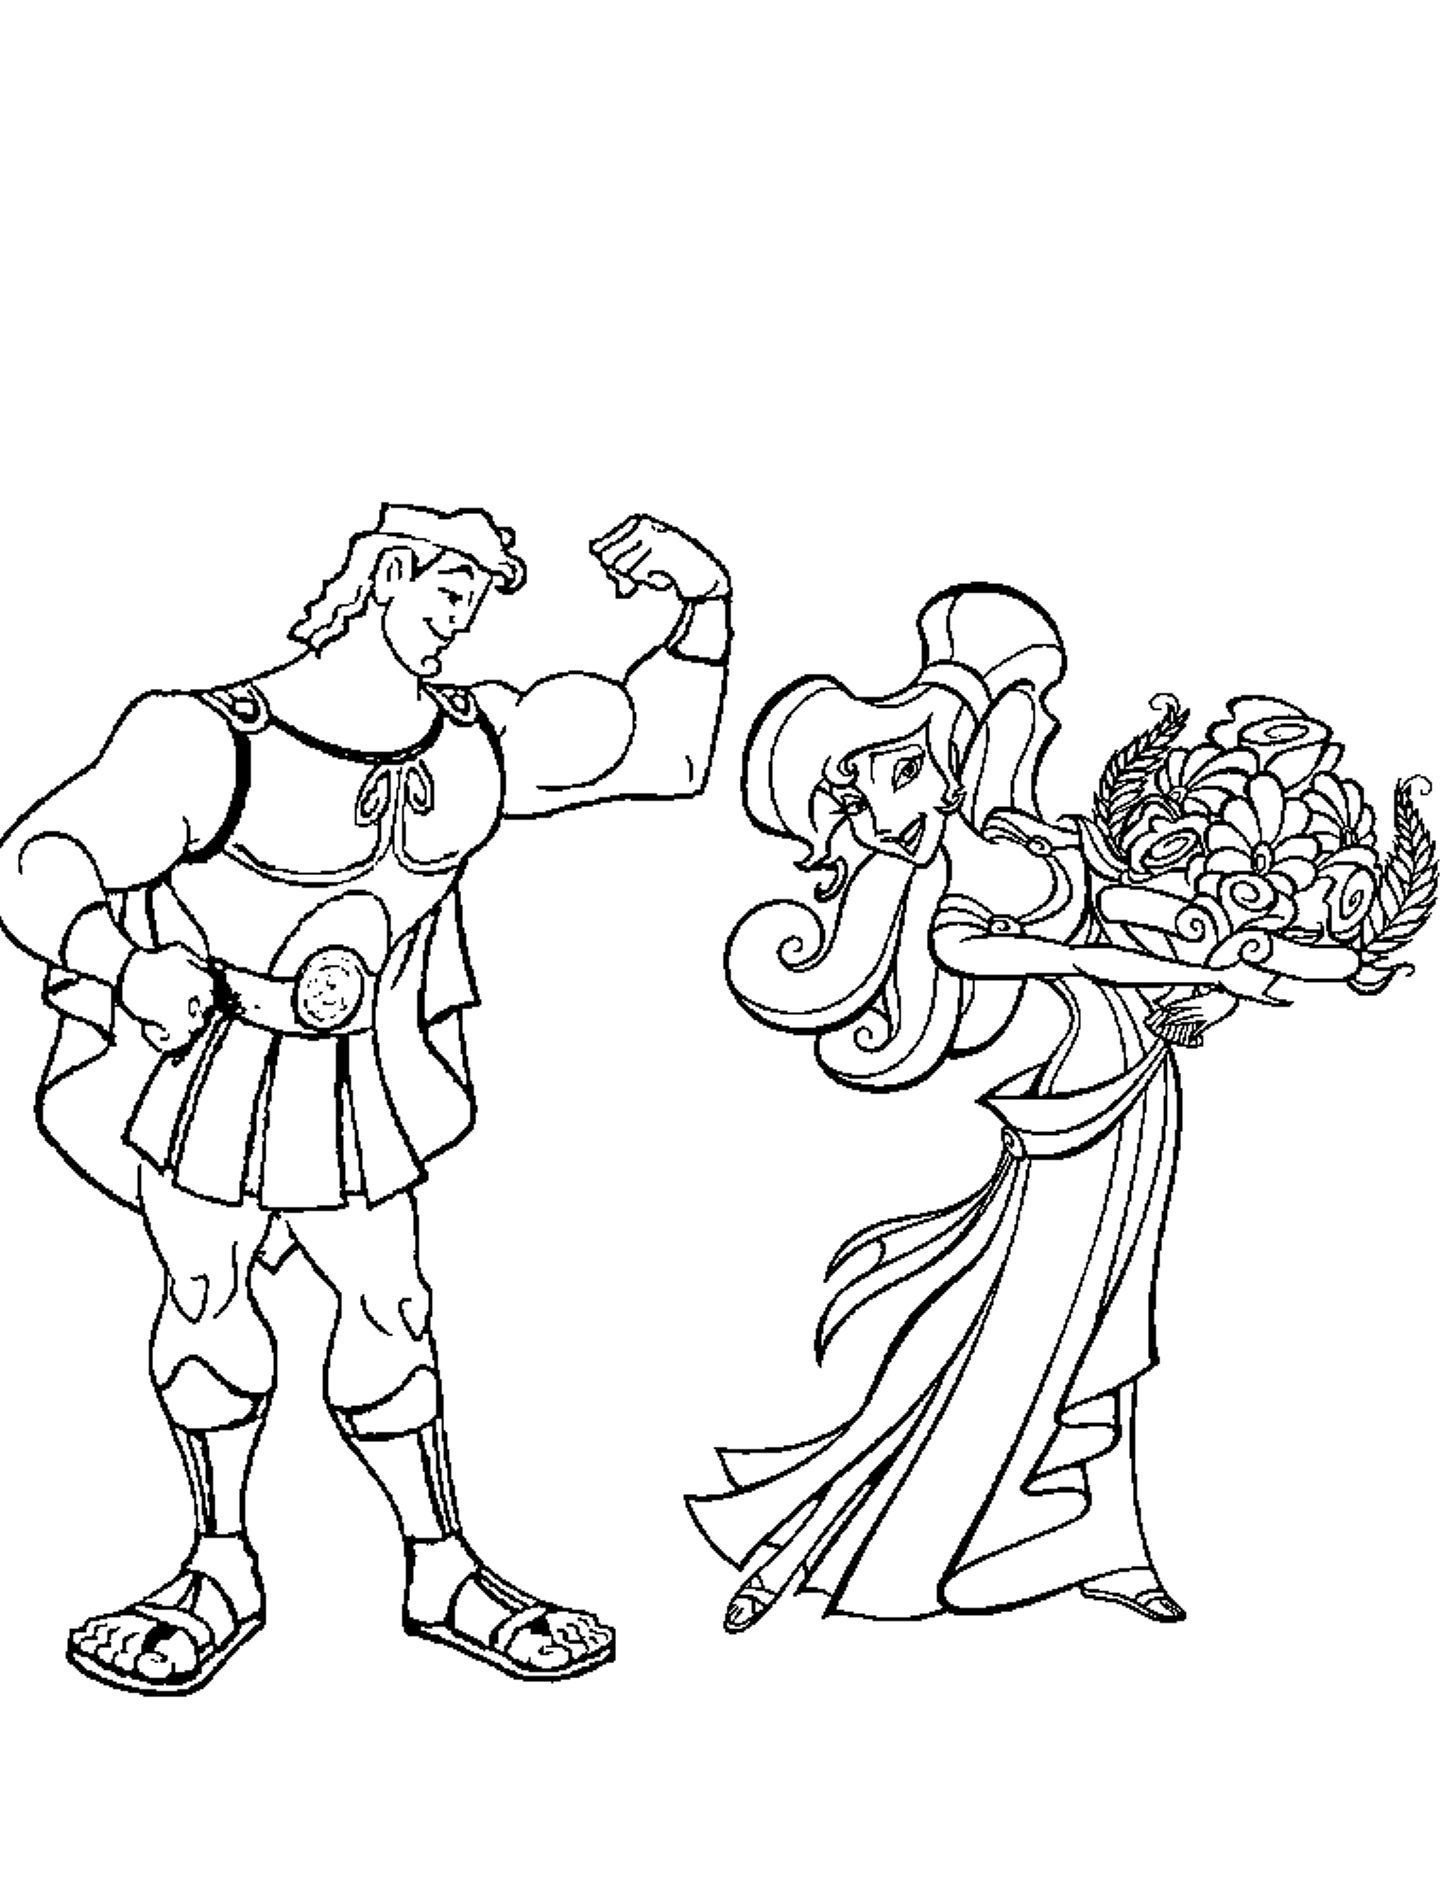 Disney Hercules Coloring Pages Home